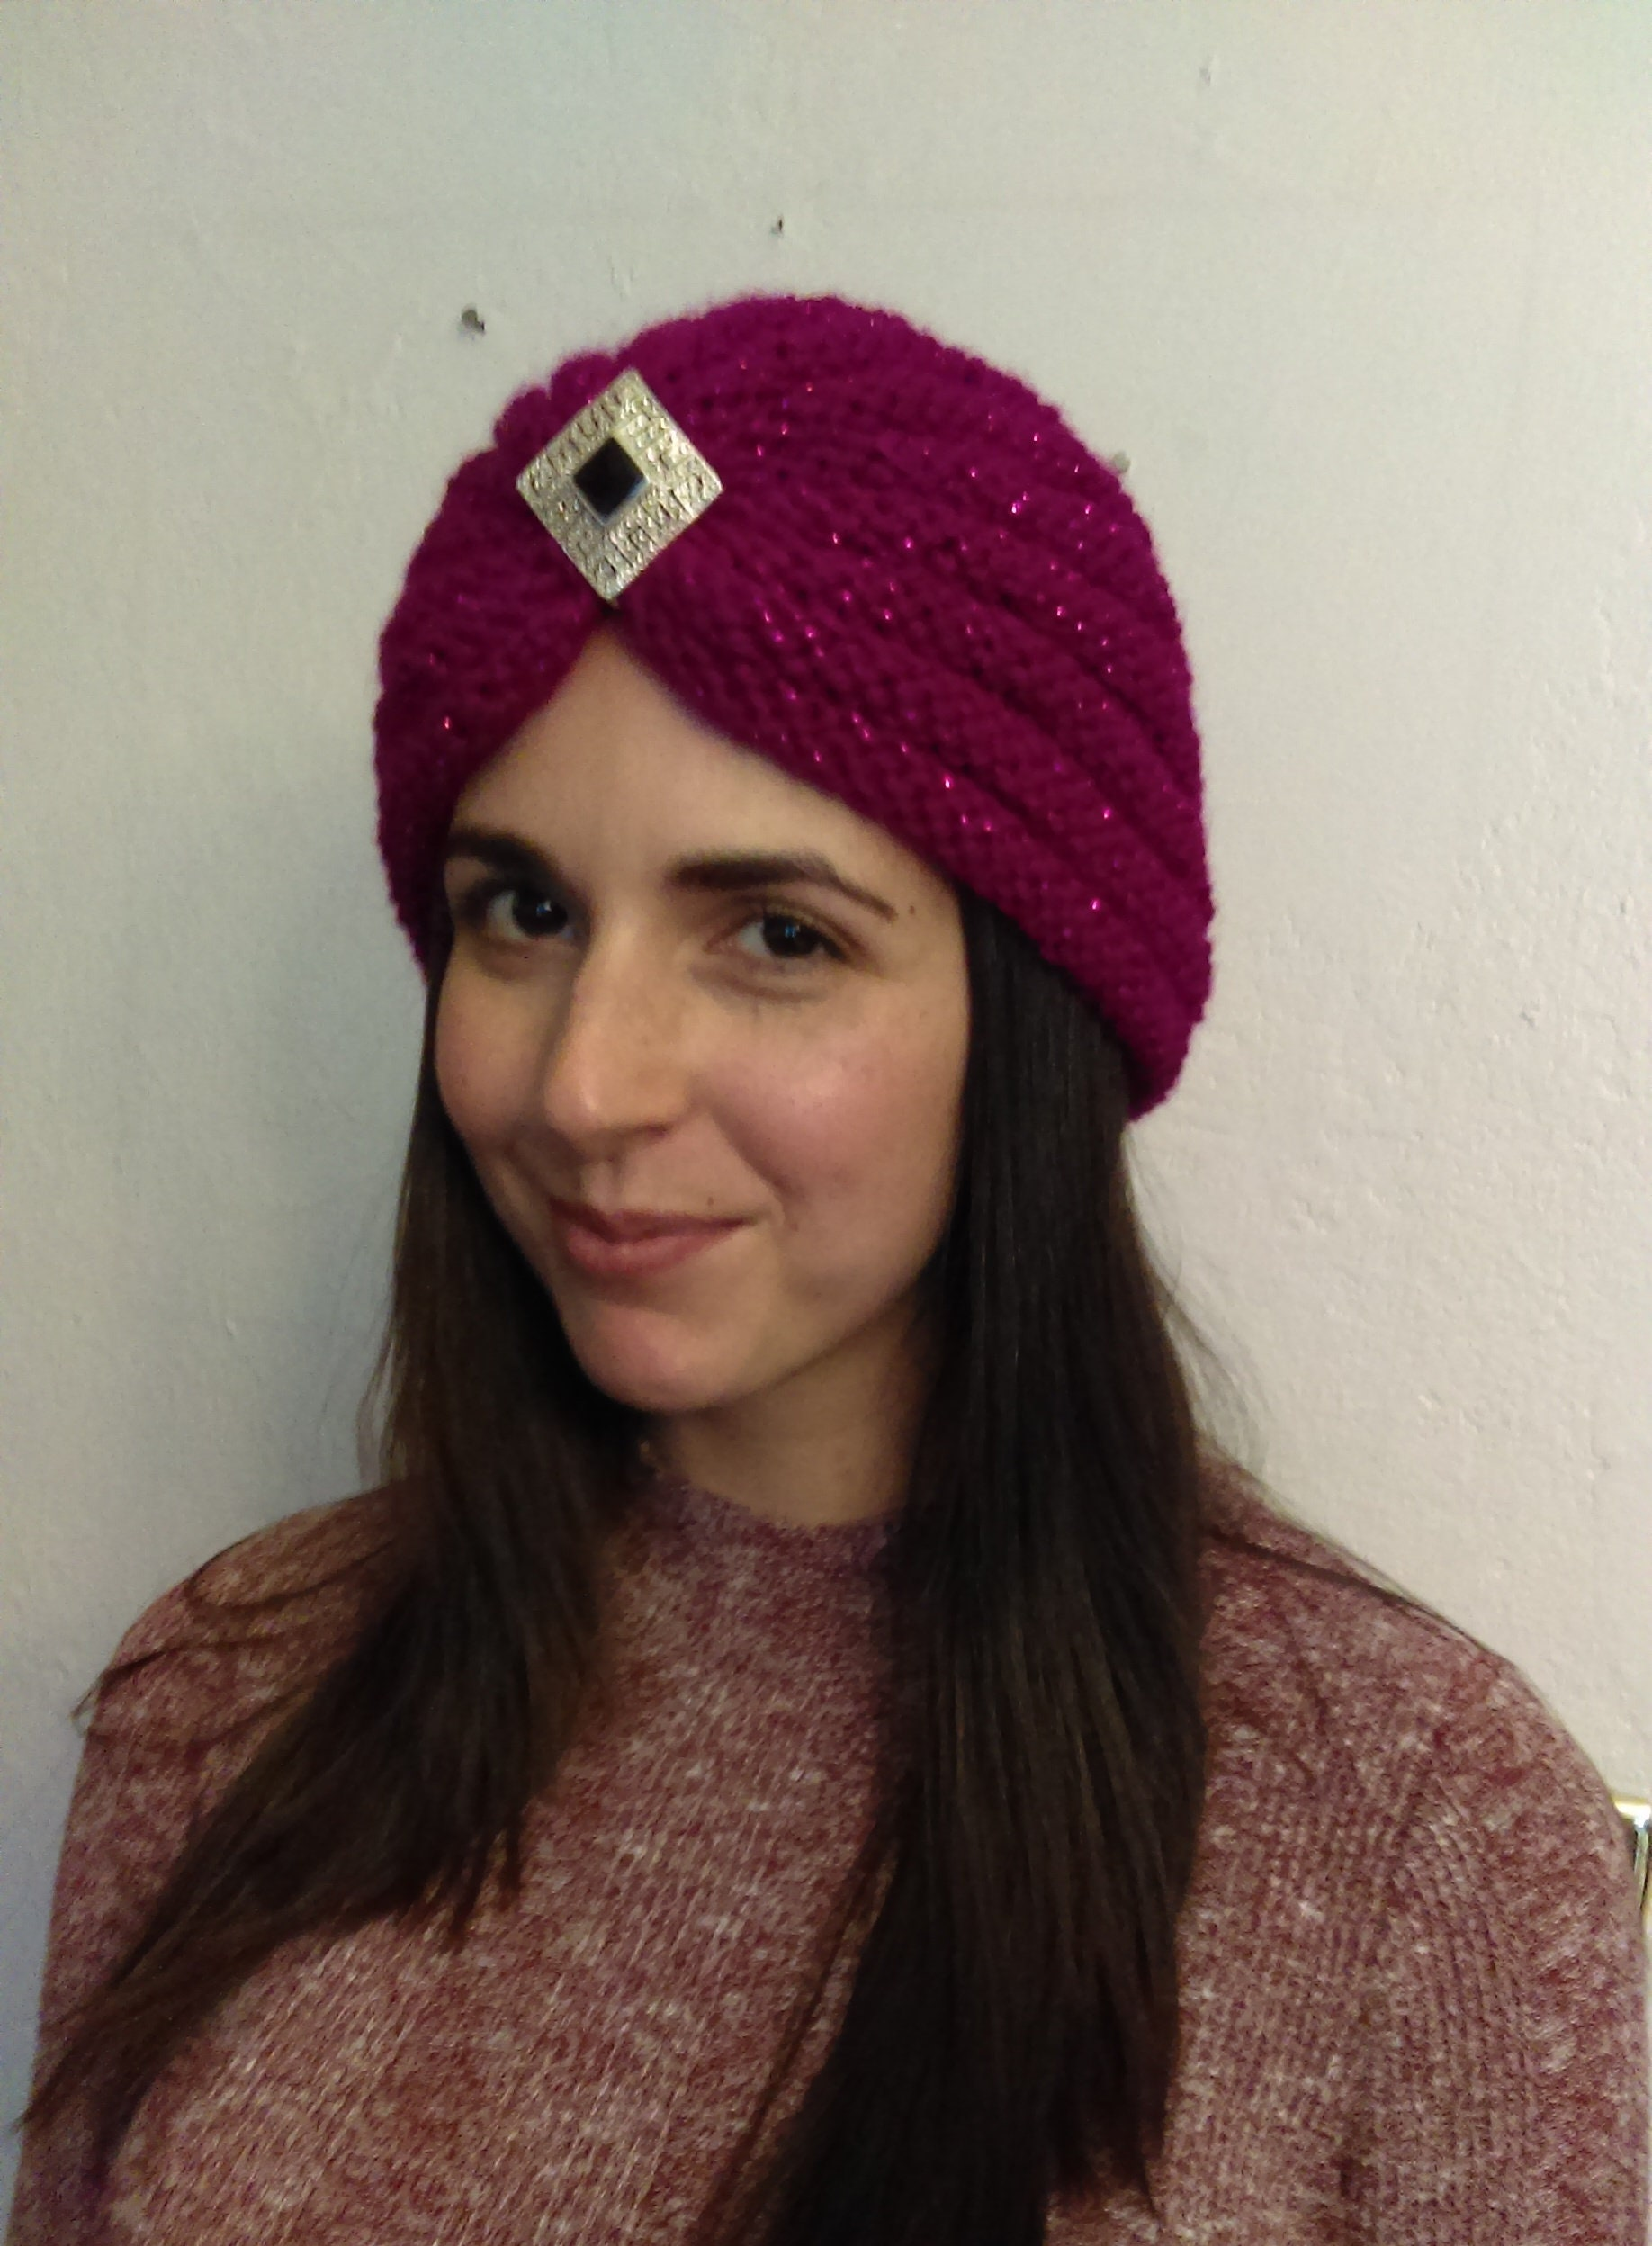 Knit TURBAN PATTERN - Berry Bling from PrimrosePatterns on Etsy Studio